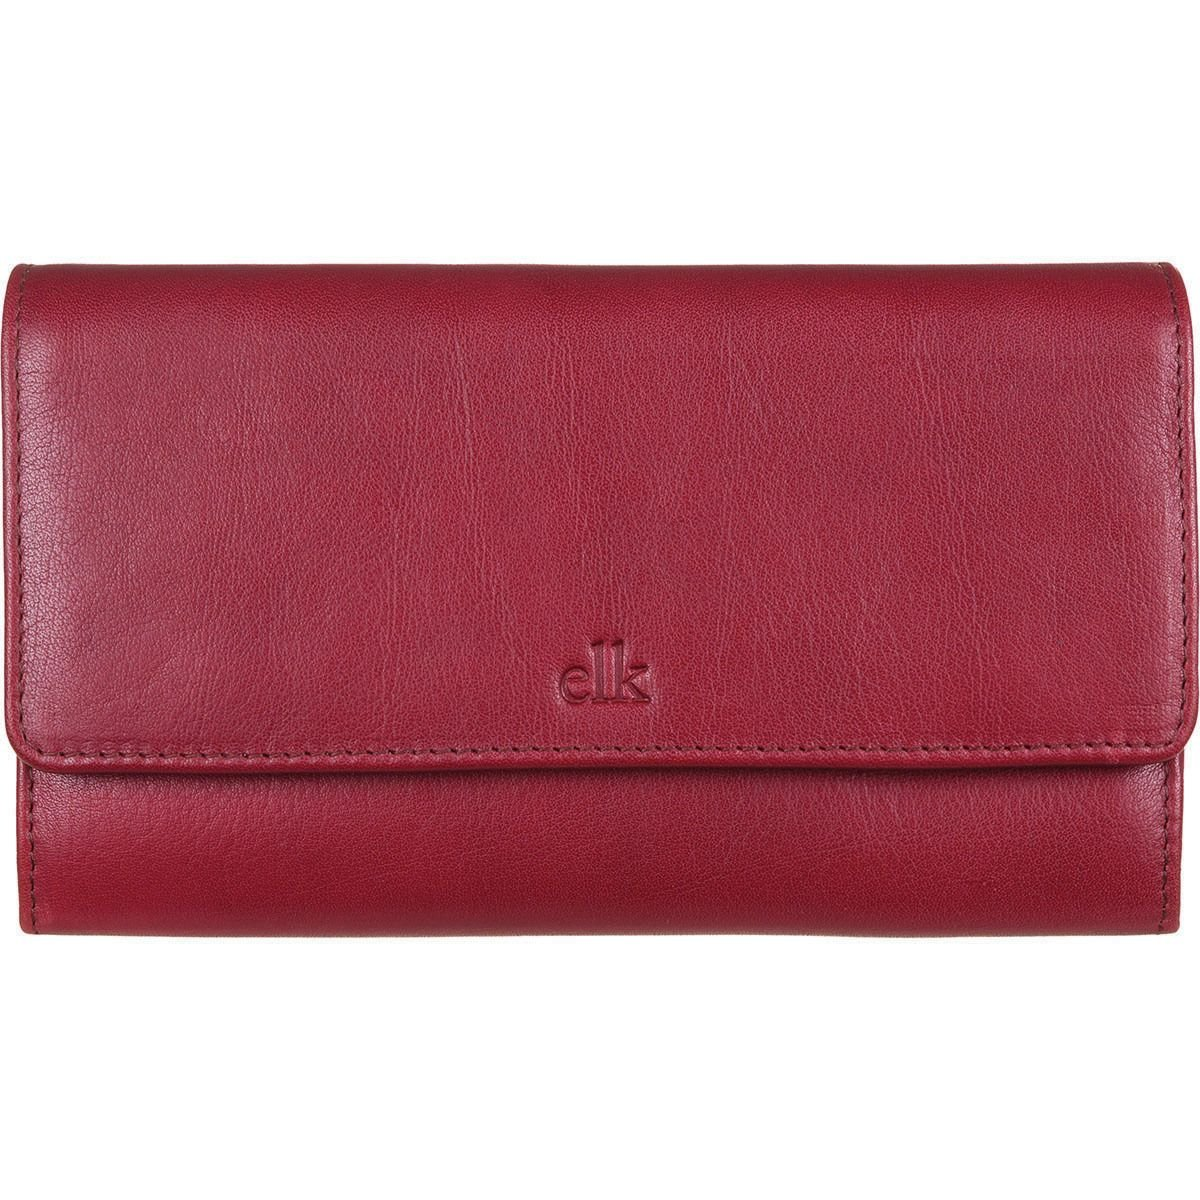 Elk Accessories Tofte Wallet - Women's Scarlet, One Size